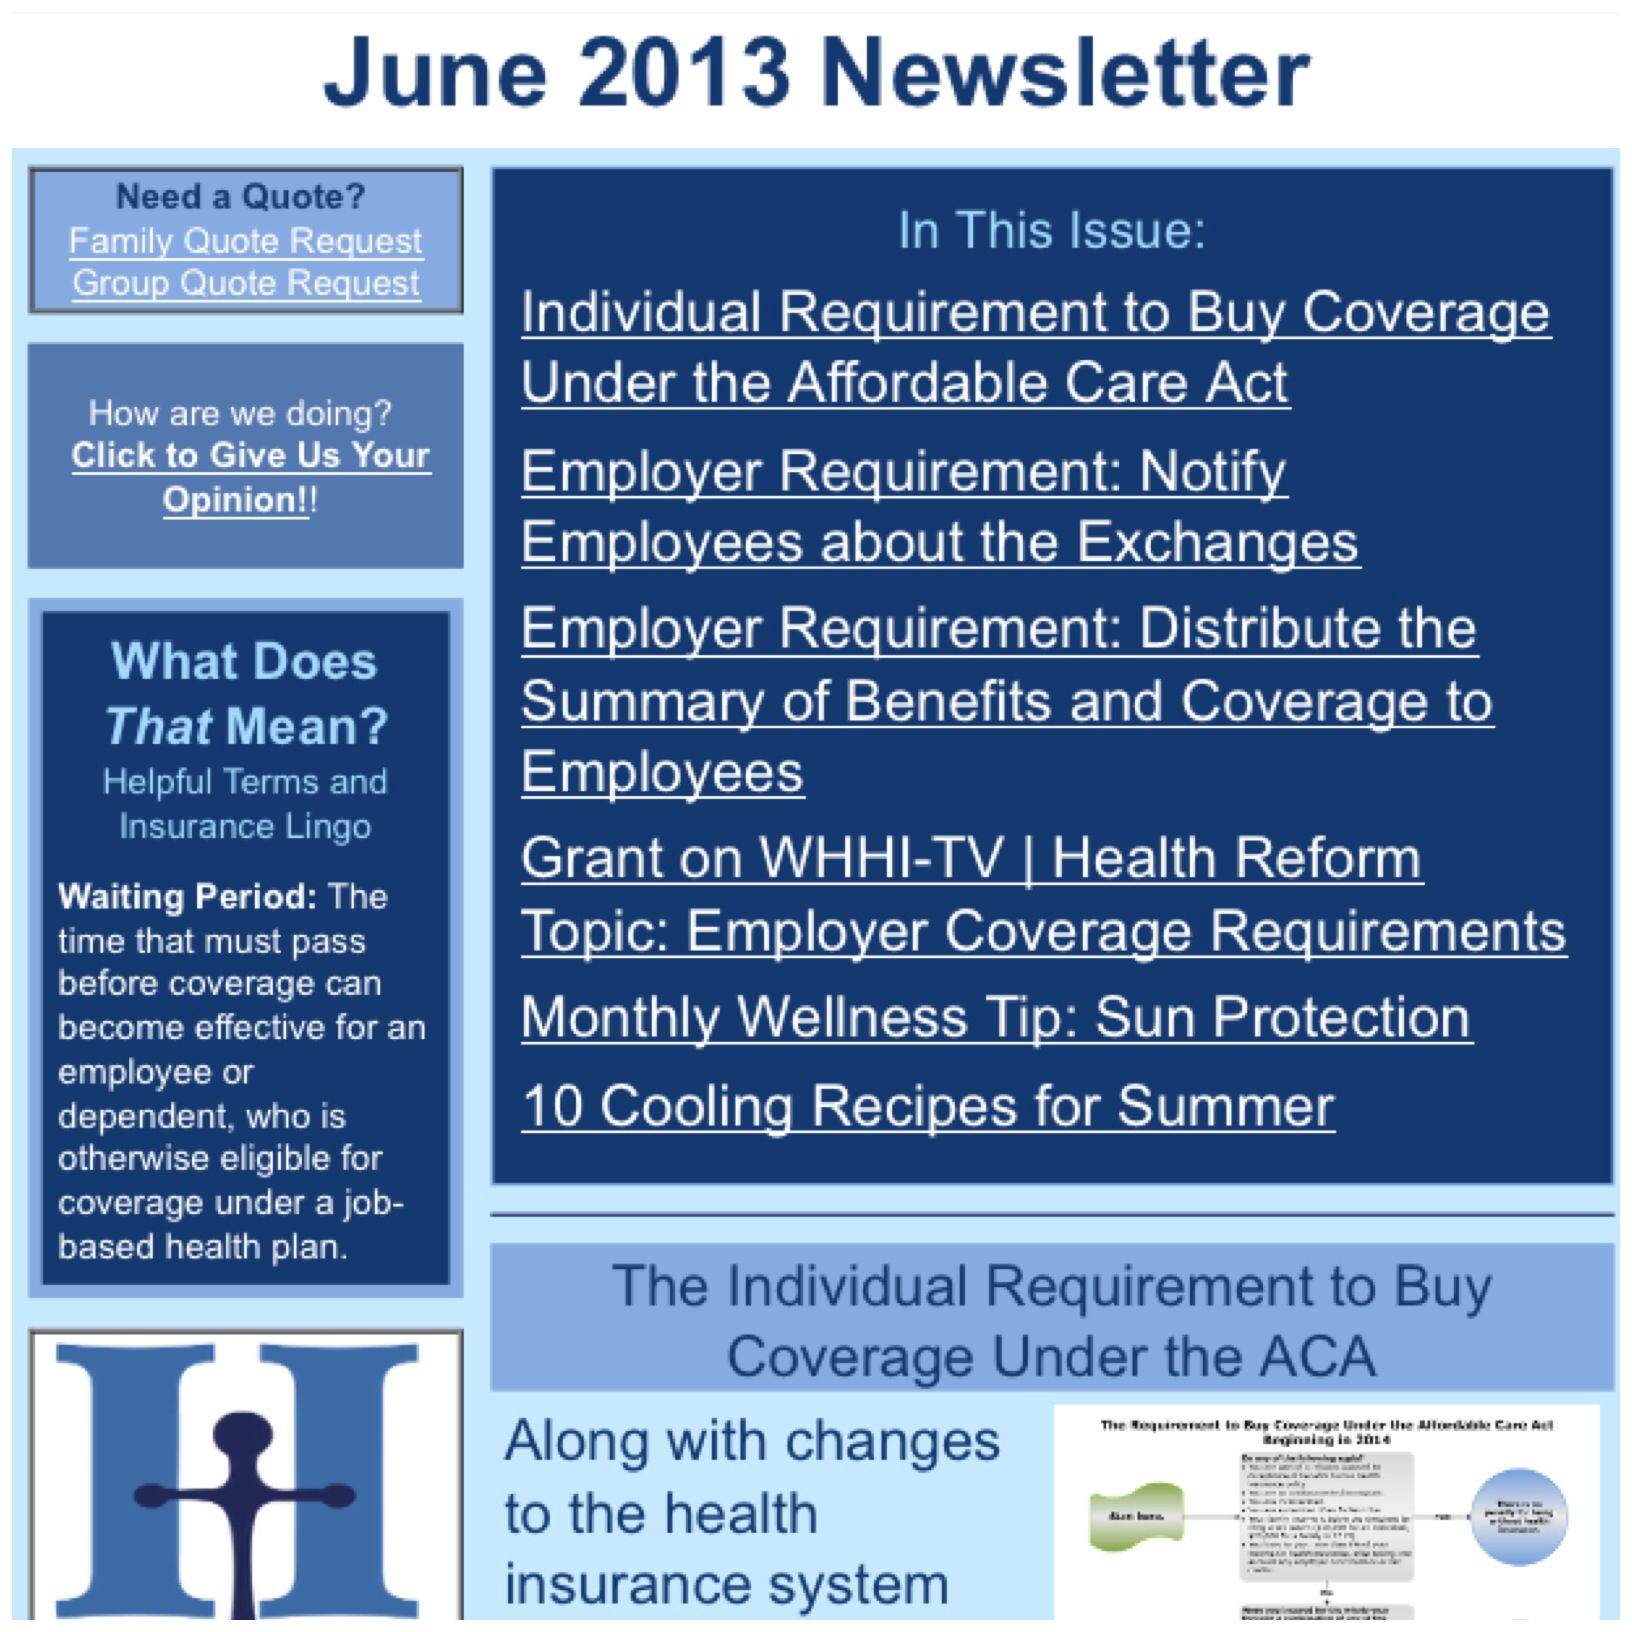 June 2013 Newsletter In This Issue Individual Requirement To